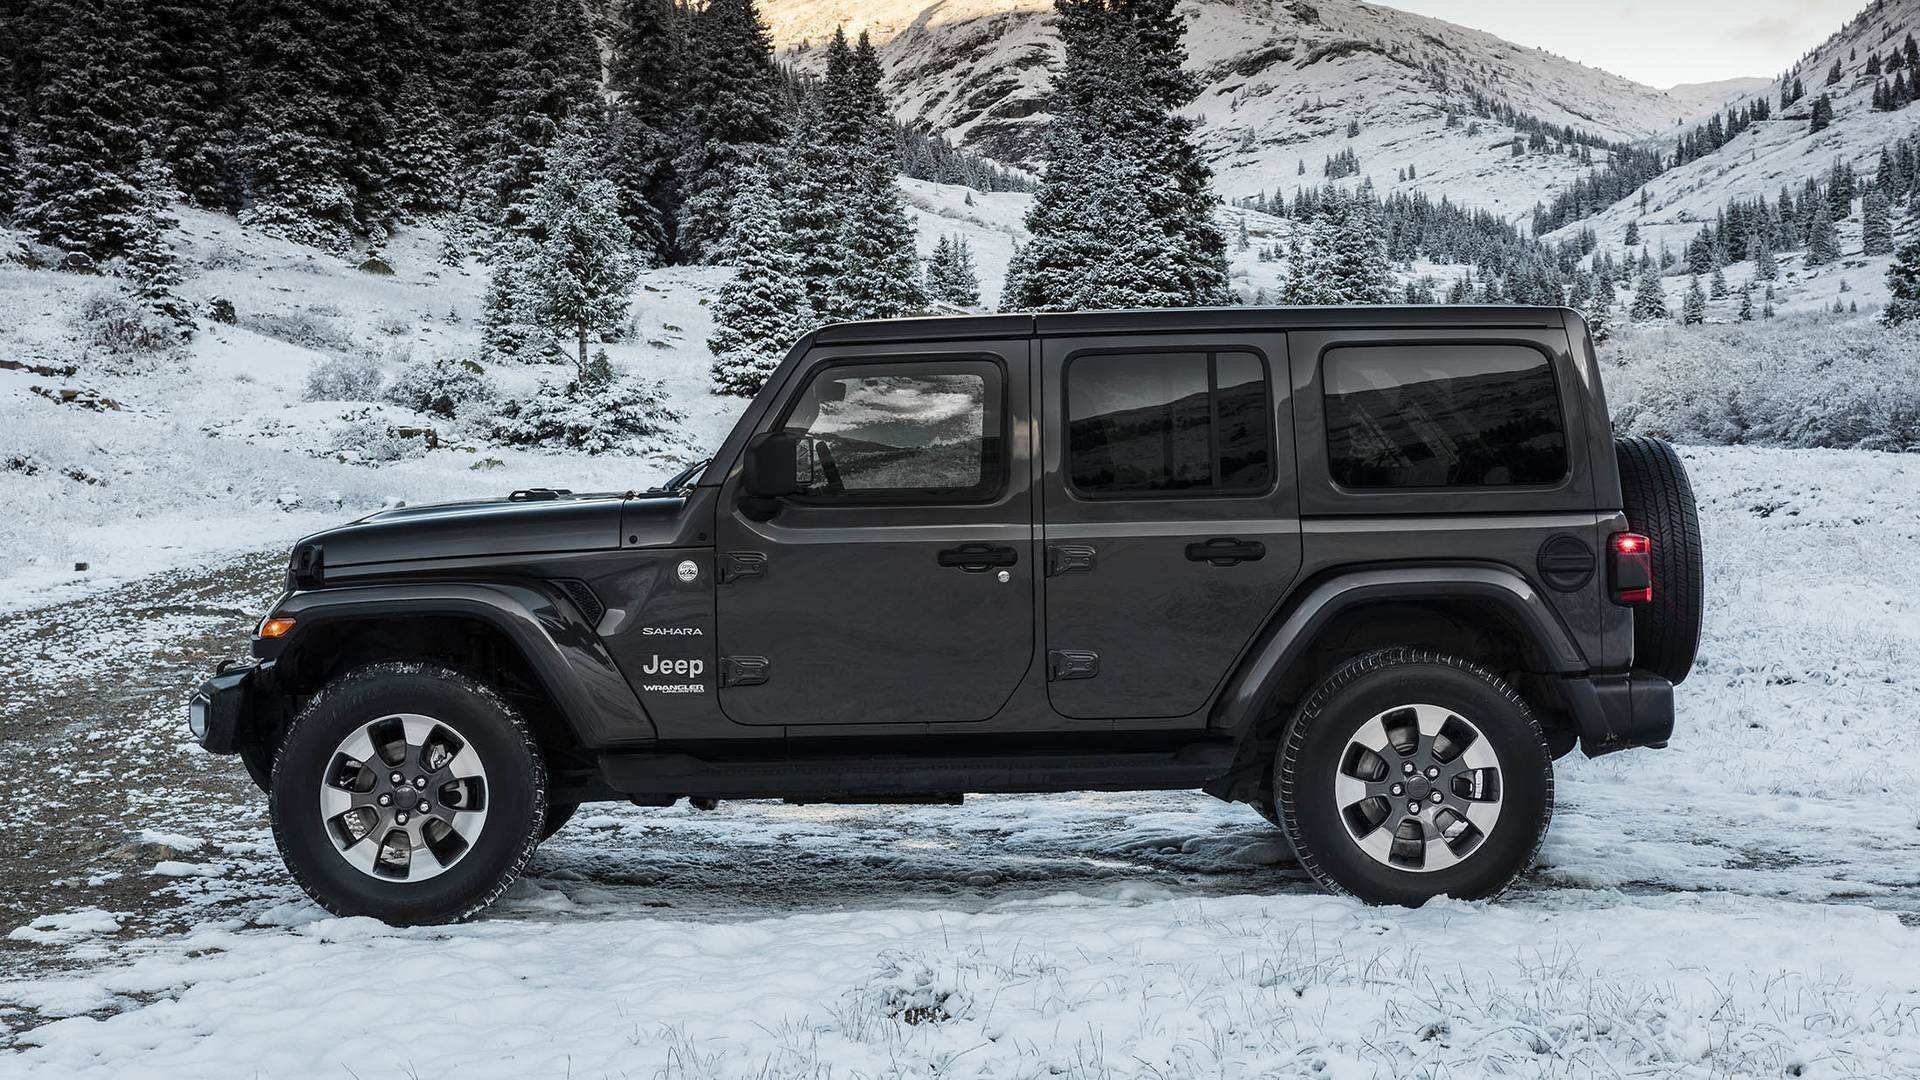 30 All New Jeep Wrangler 2020 Images